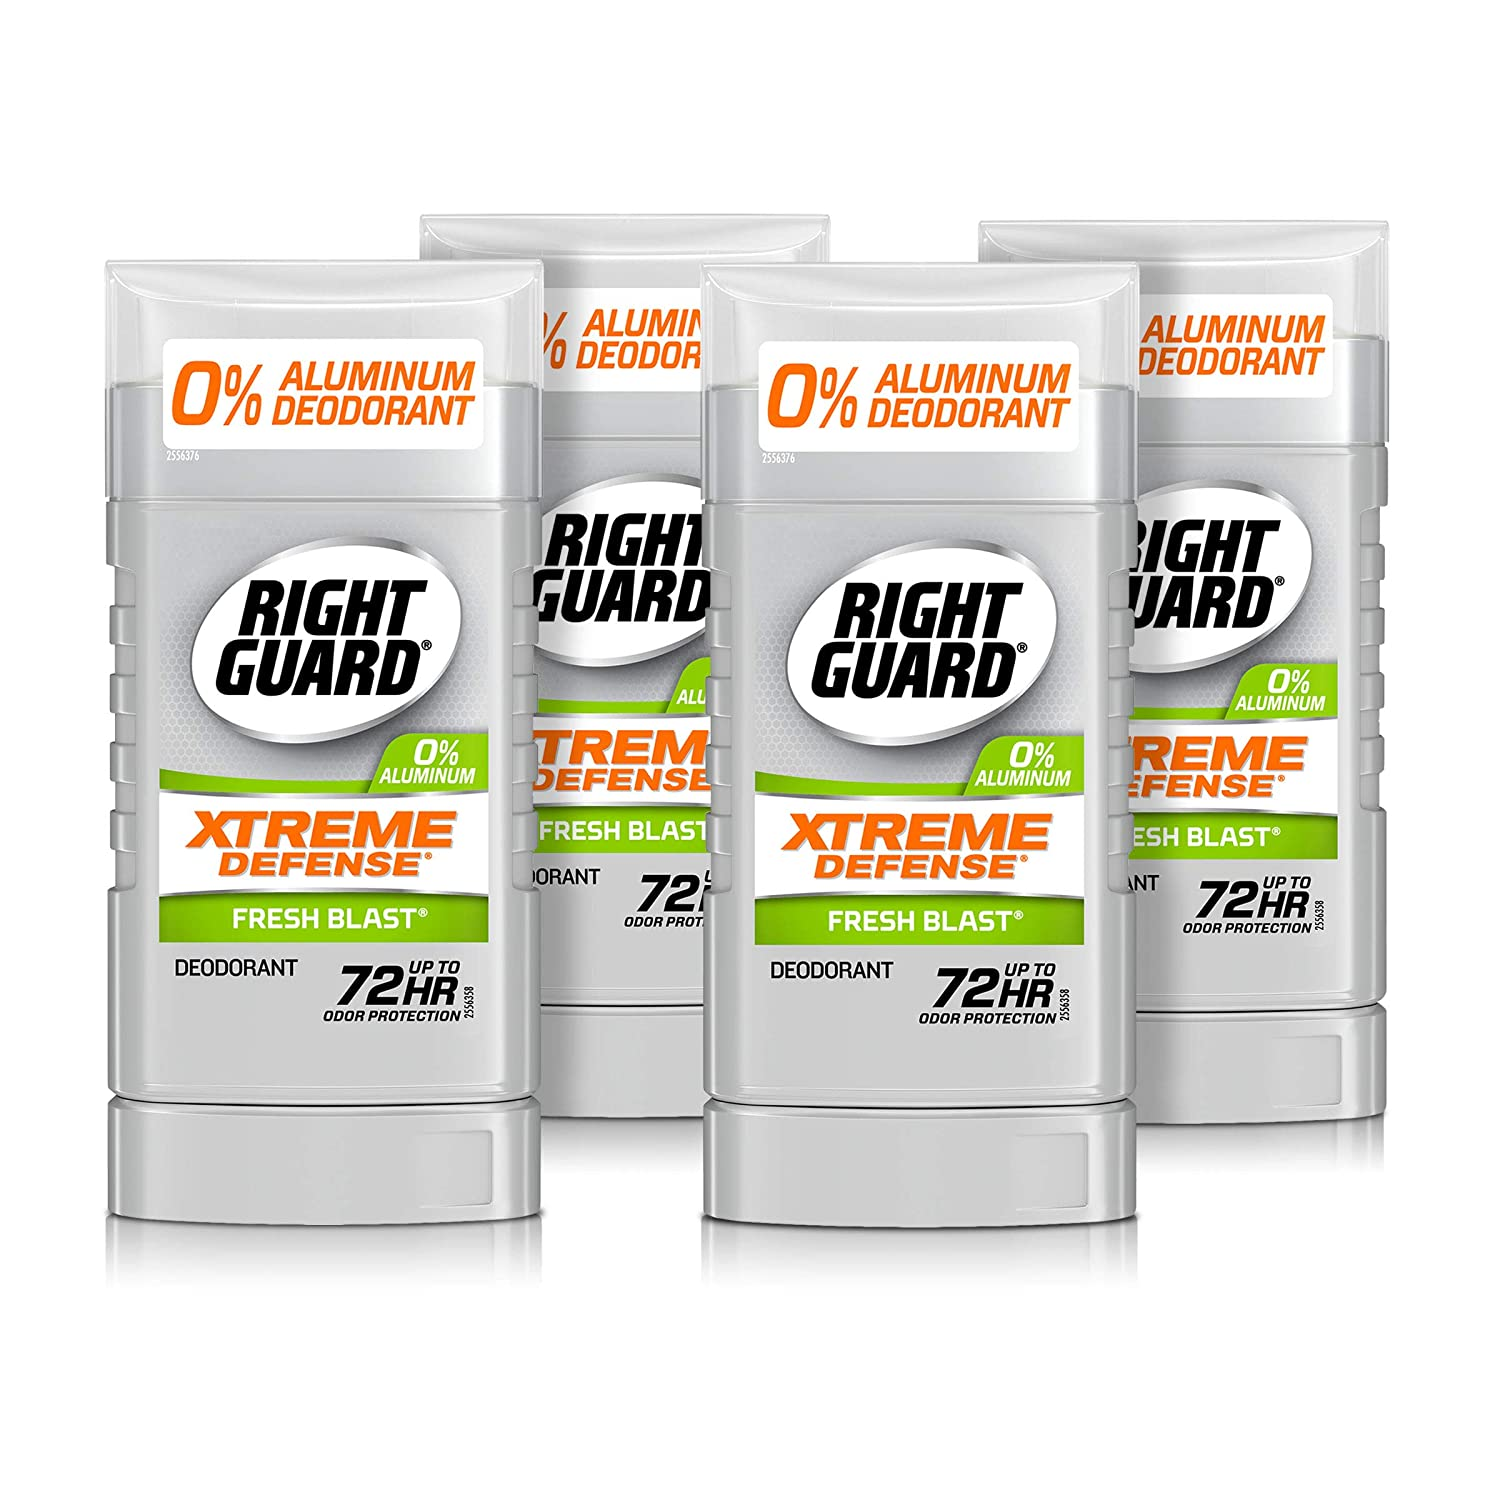 Right Guard Xtreme Defense Aluminum-Free Deodorant Invisible Solid Stick, Fresh Blast, 3 Ounce (Pack of 4)